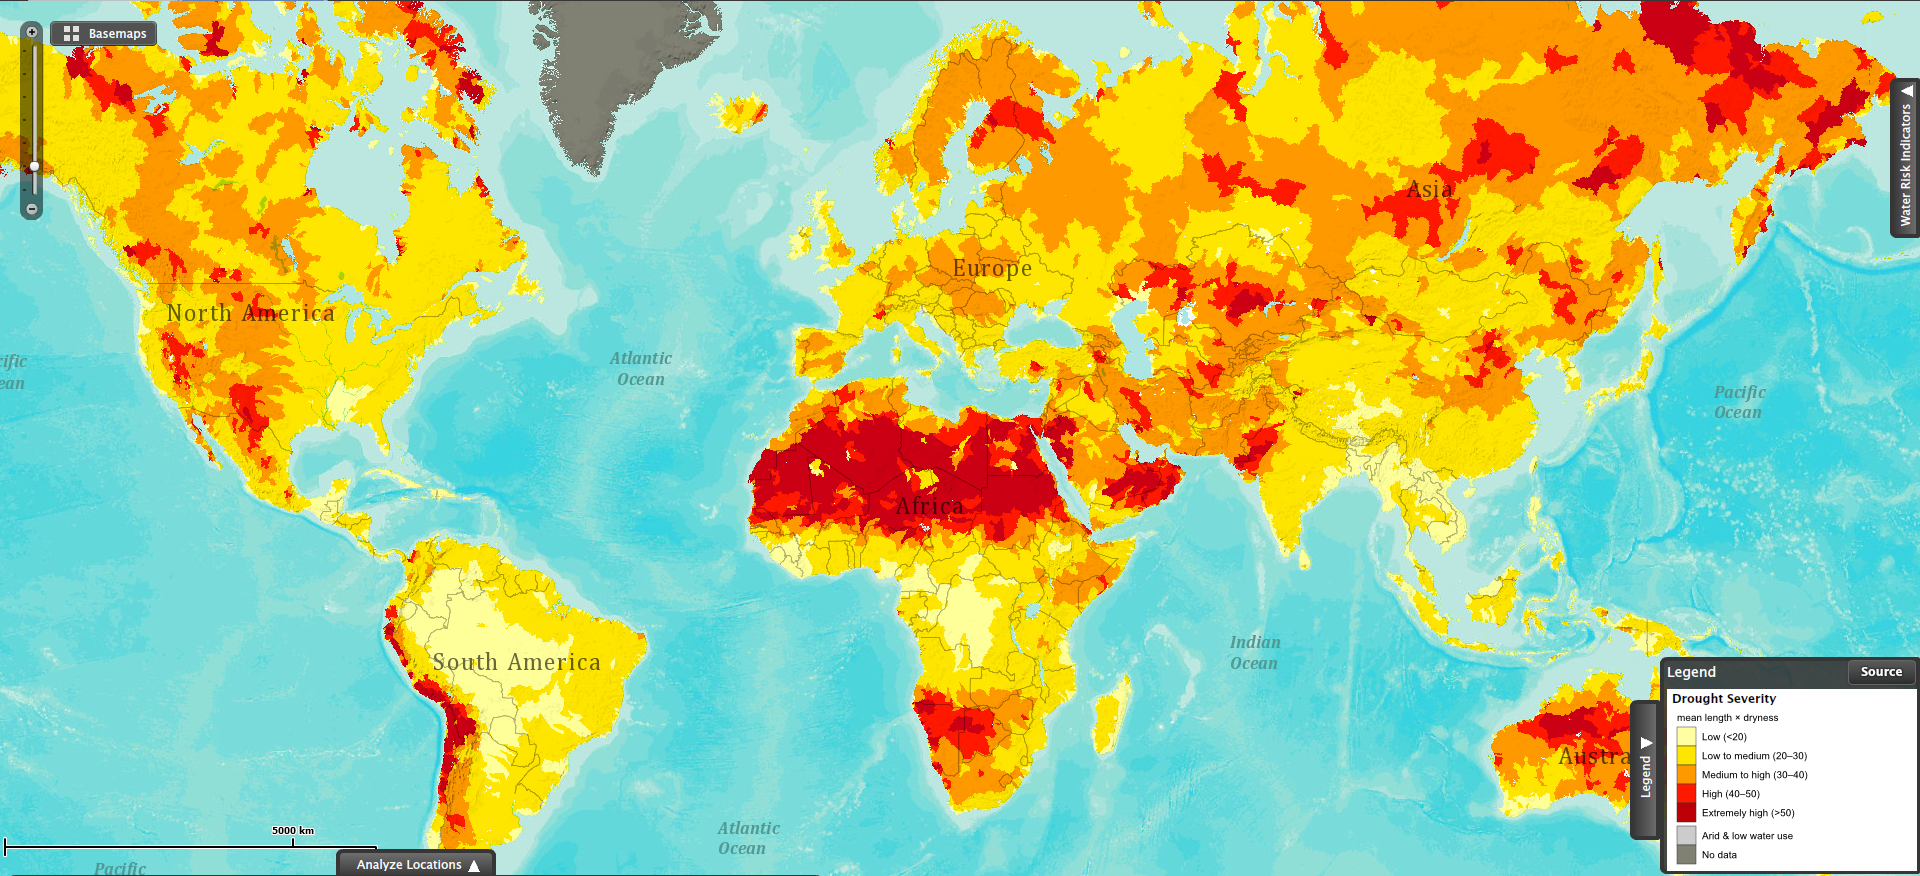 drought severity world